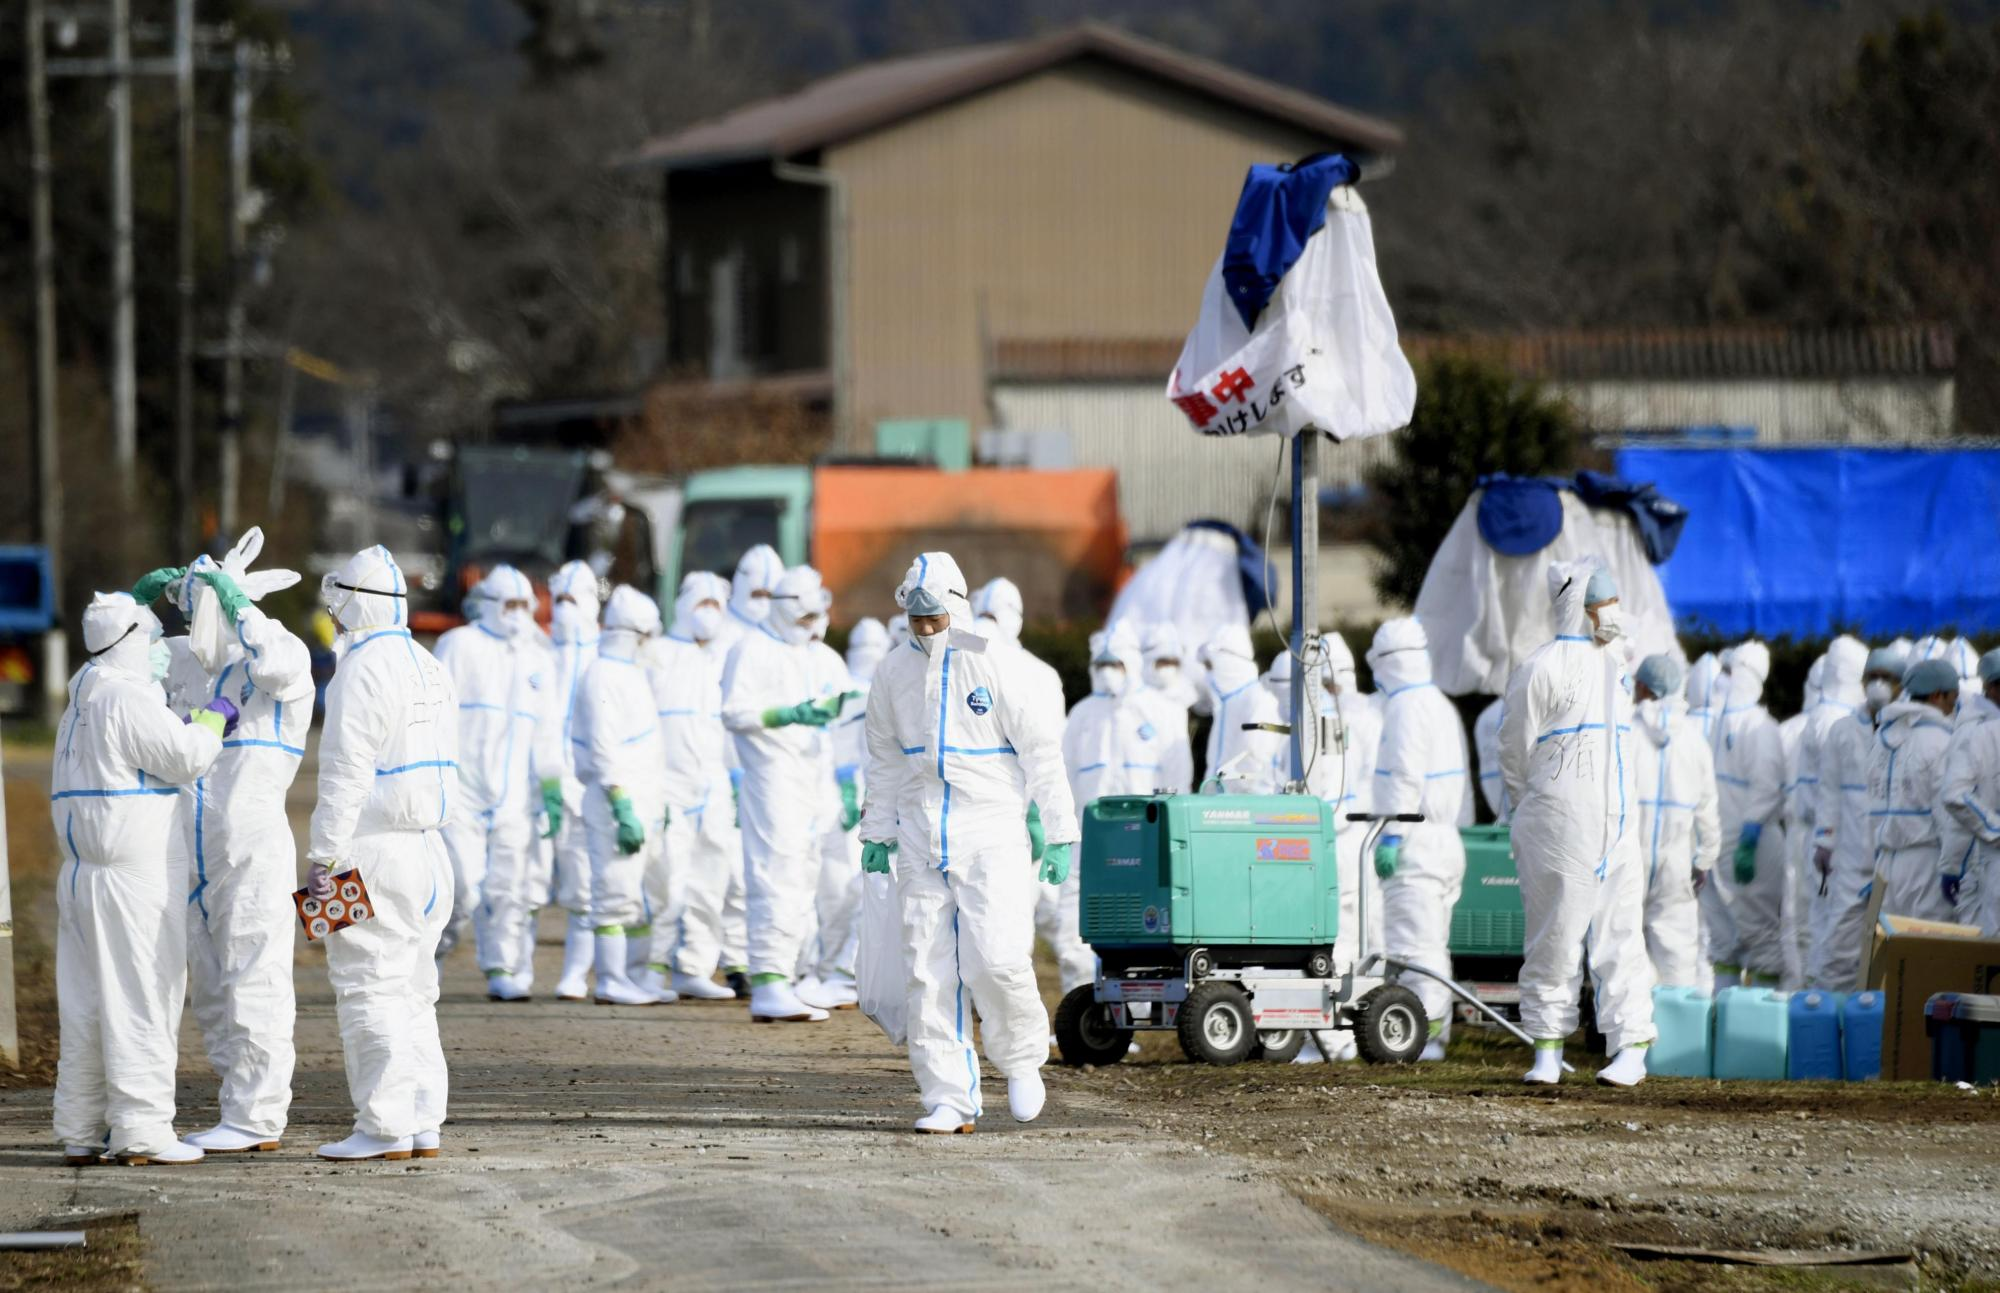 People in protective gear gather near a pen on Tuesday in Seki, Gifu Prefecture, following the detection of swine fever in one of the pigs kept there. | KYODO